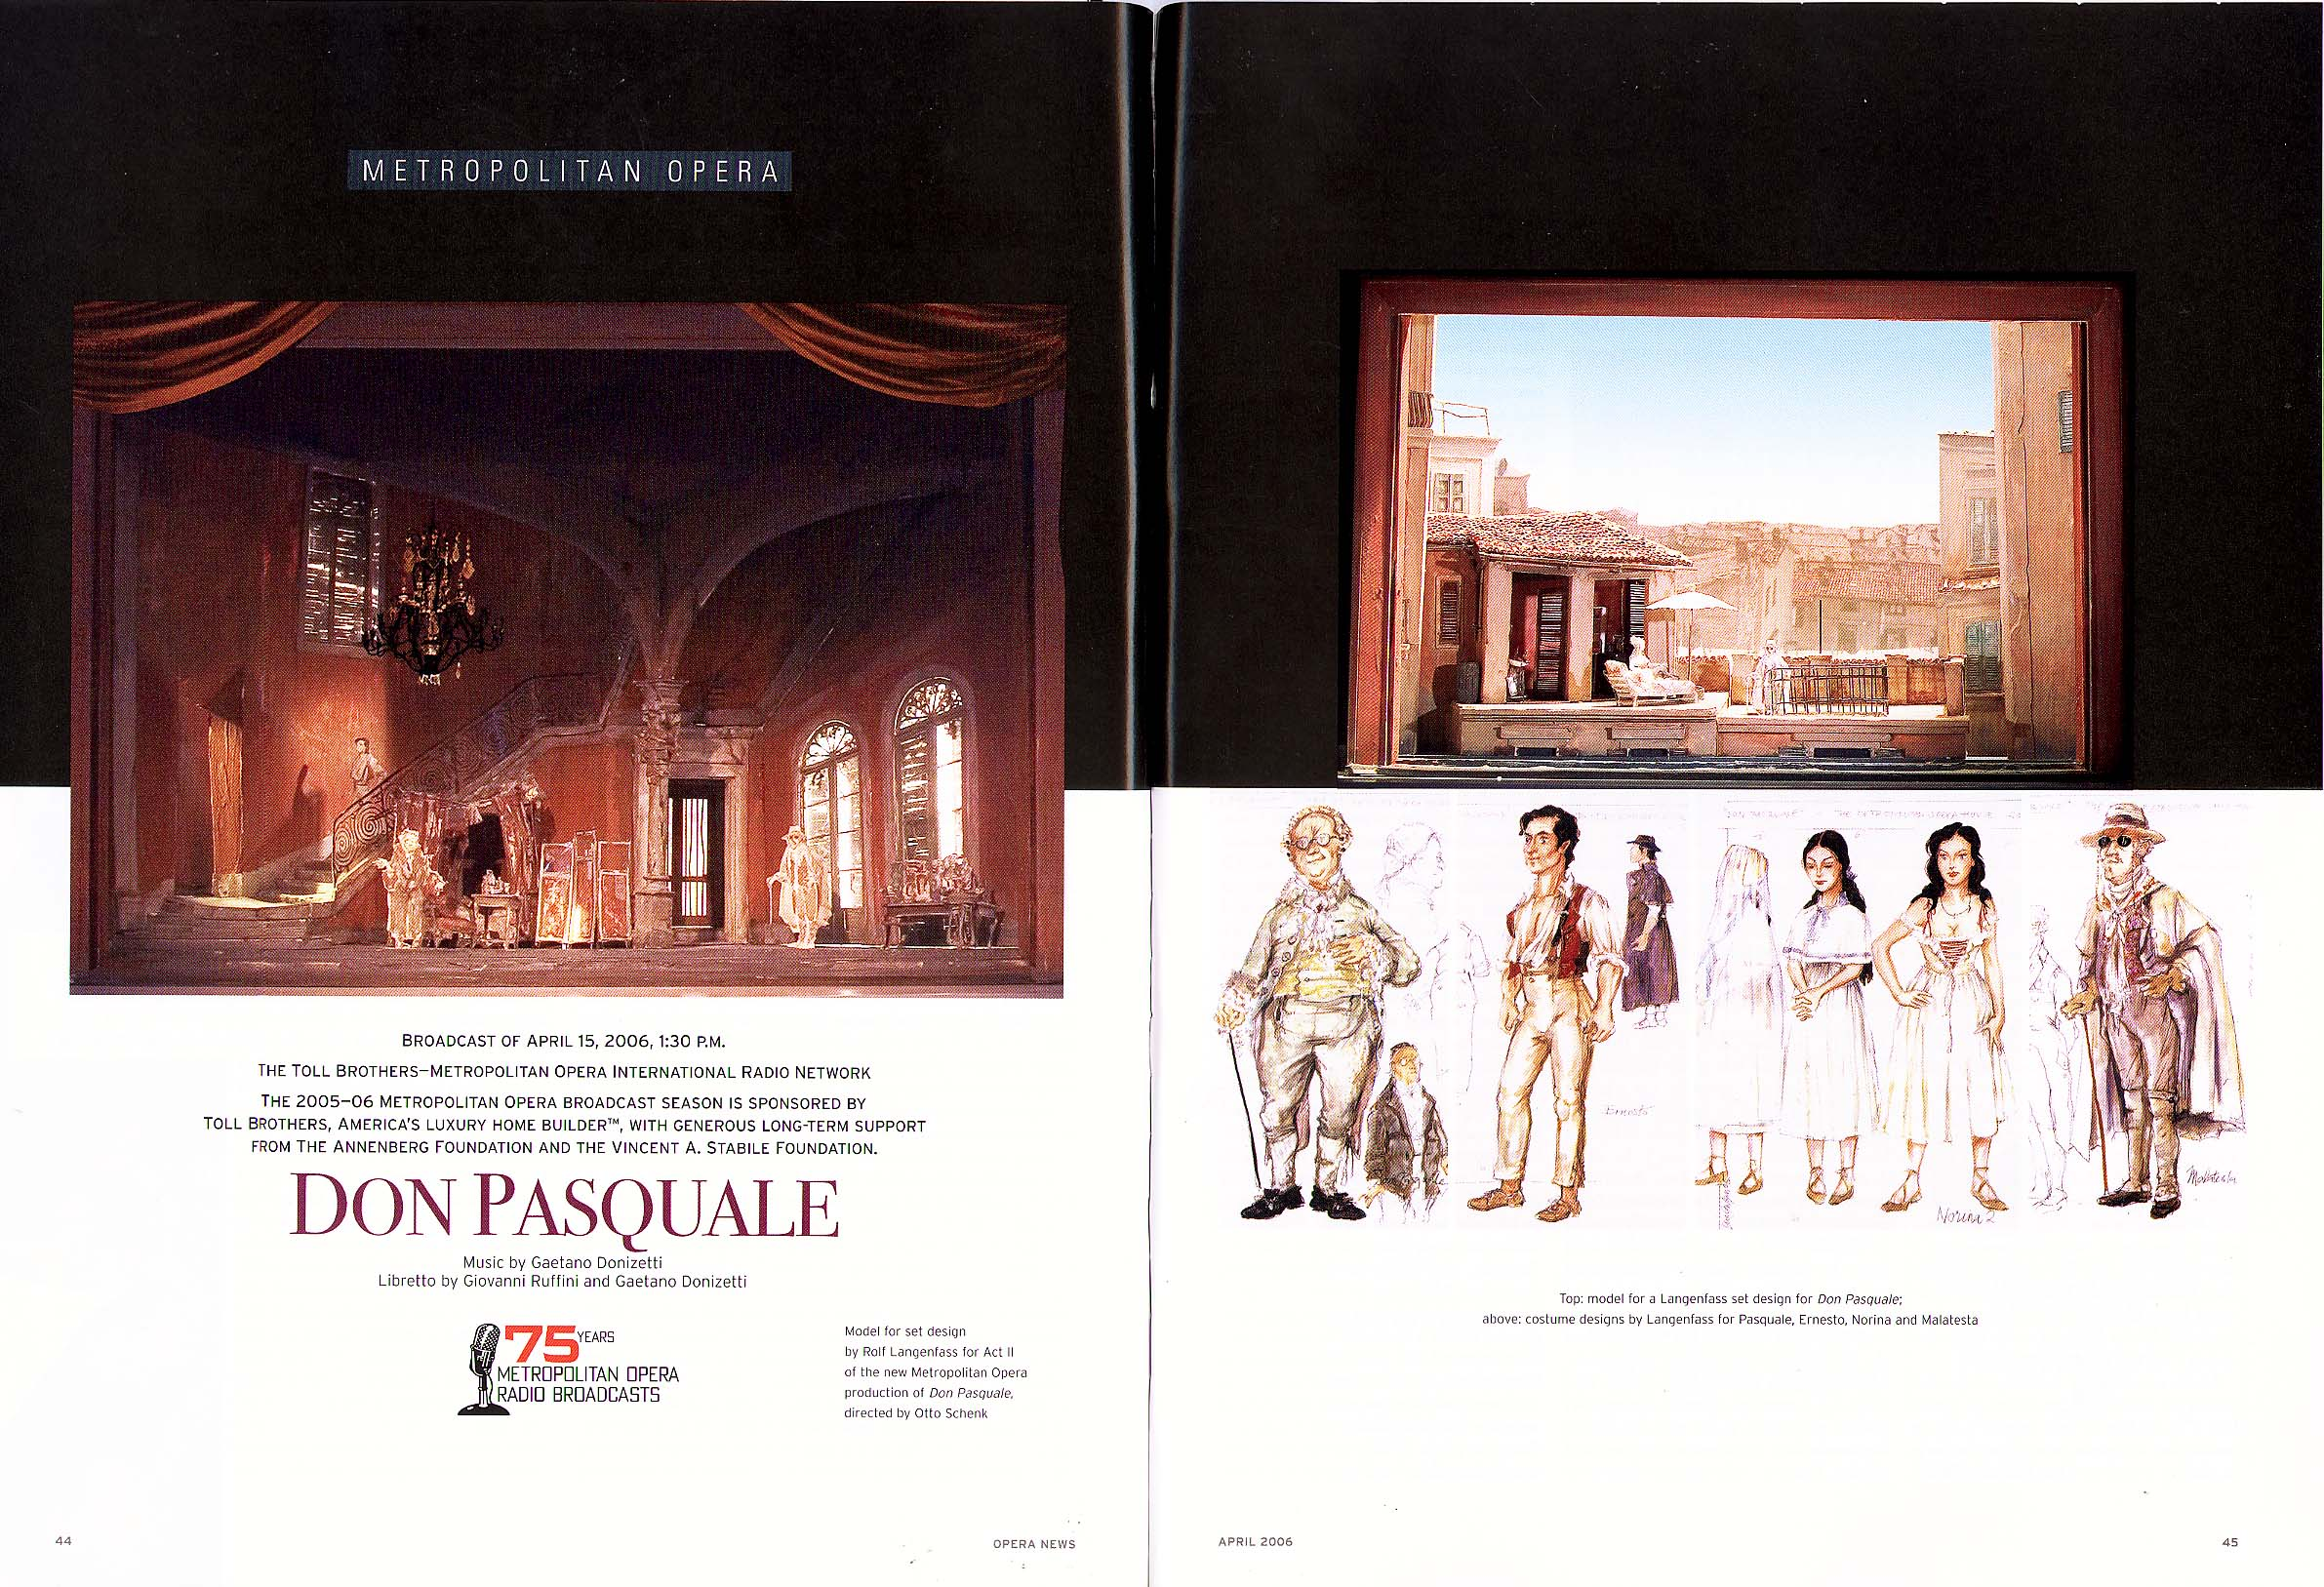 DON PASQUALE @  |  |